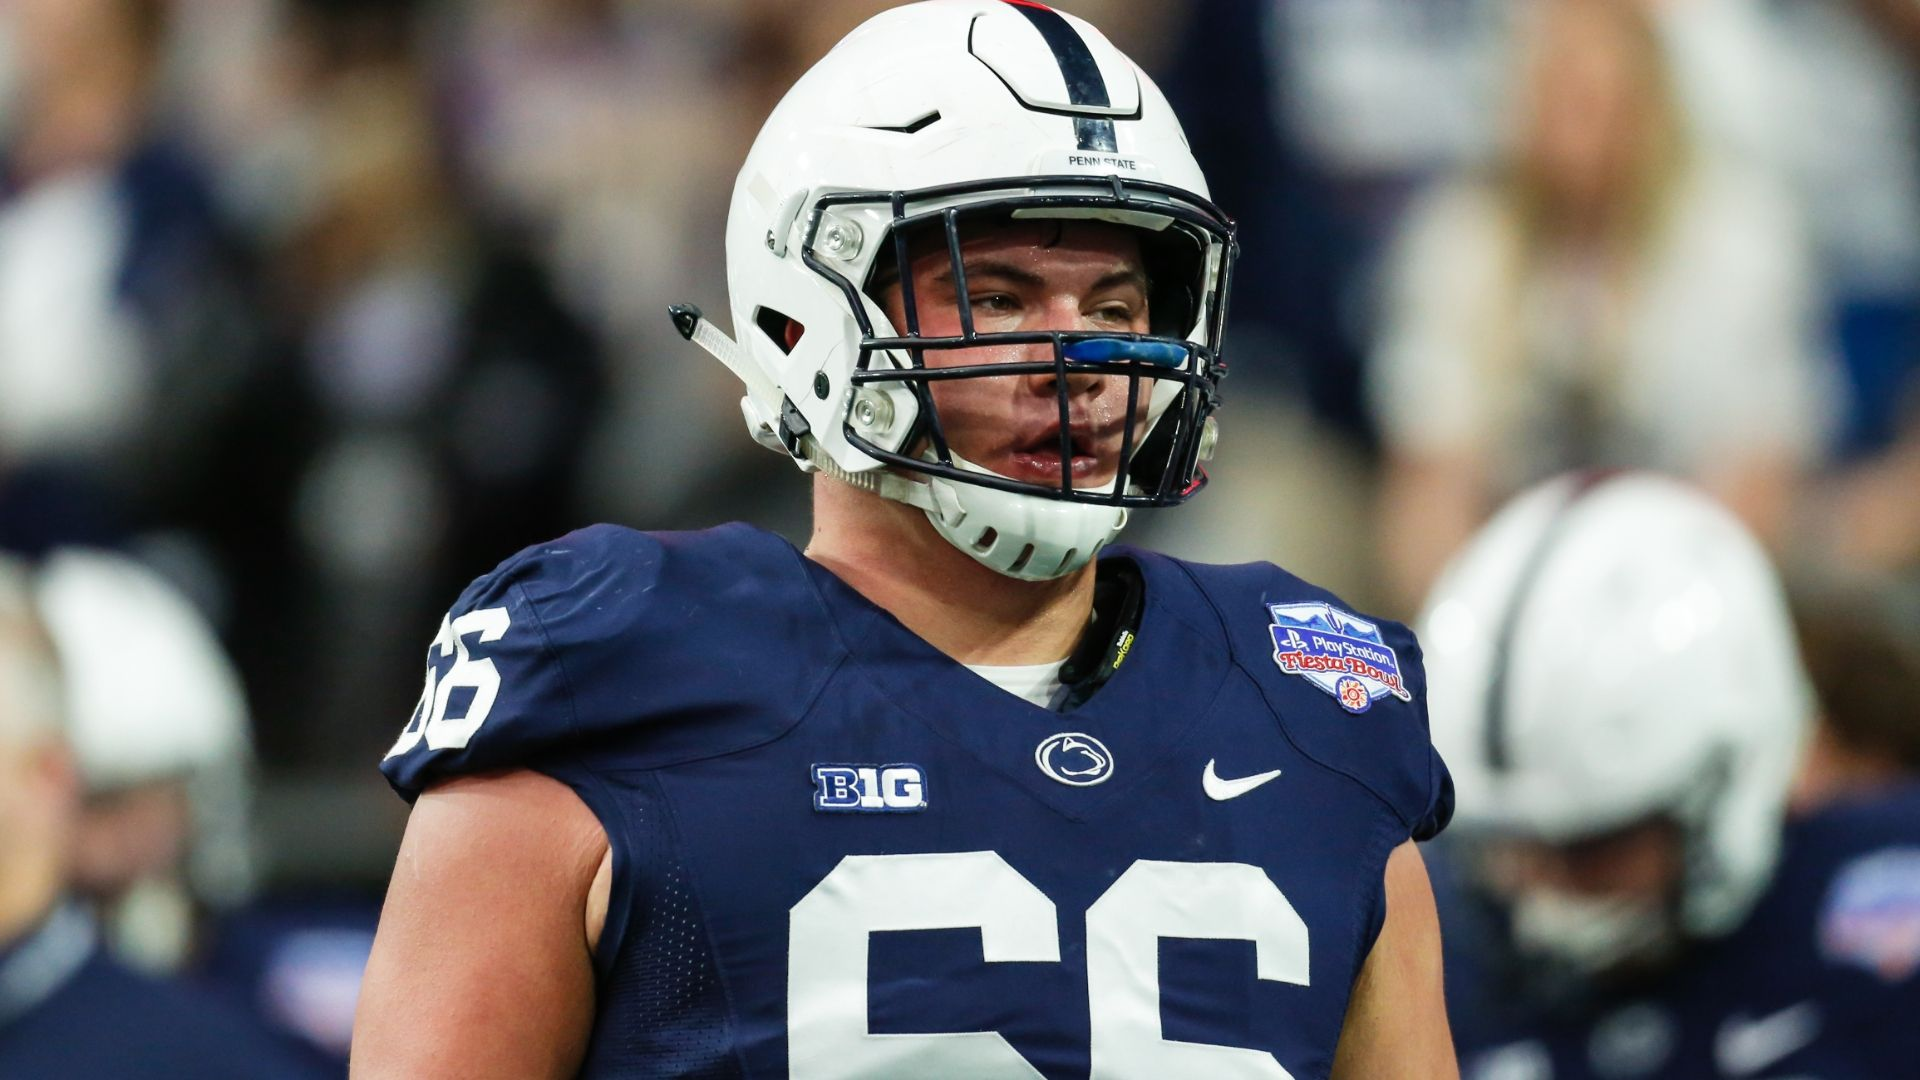 NFL draft profile: Connor McGovern